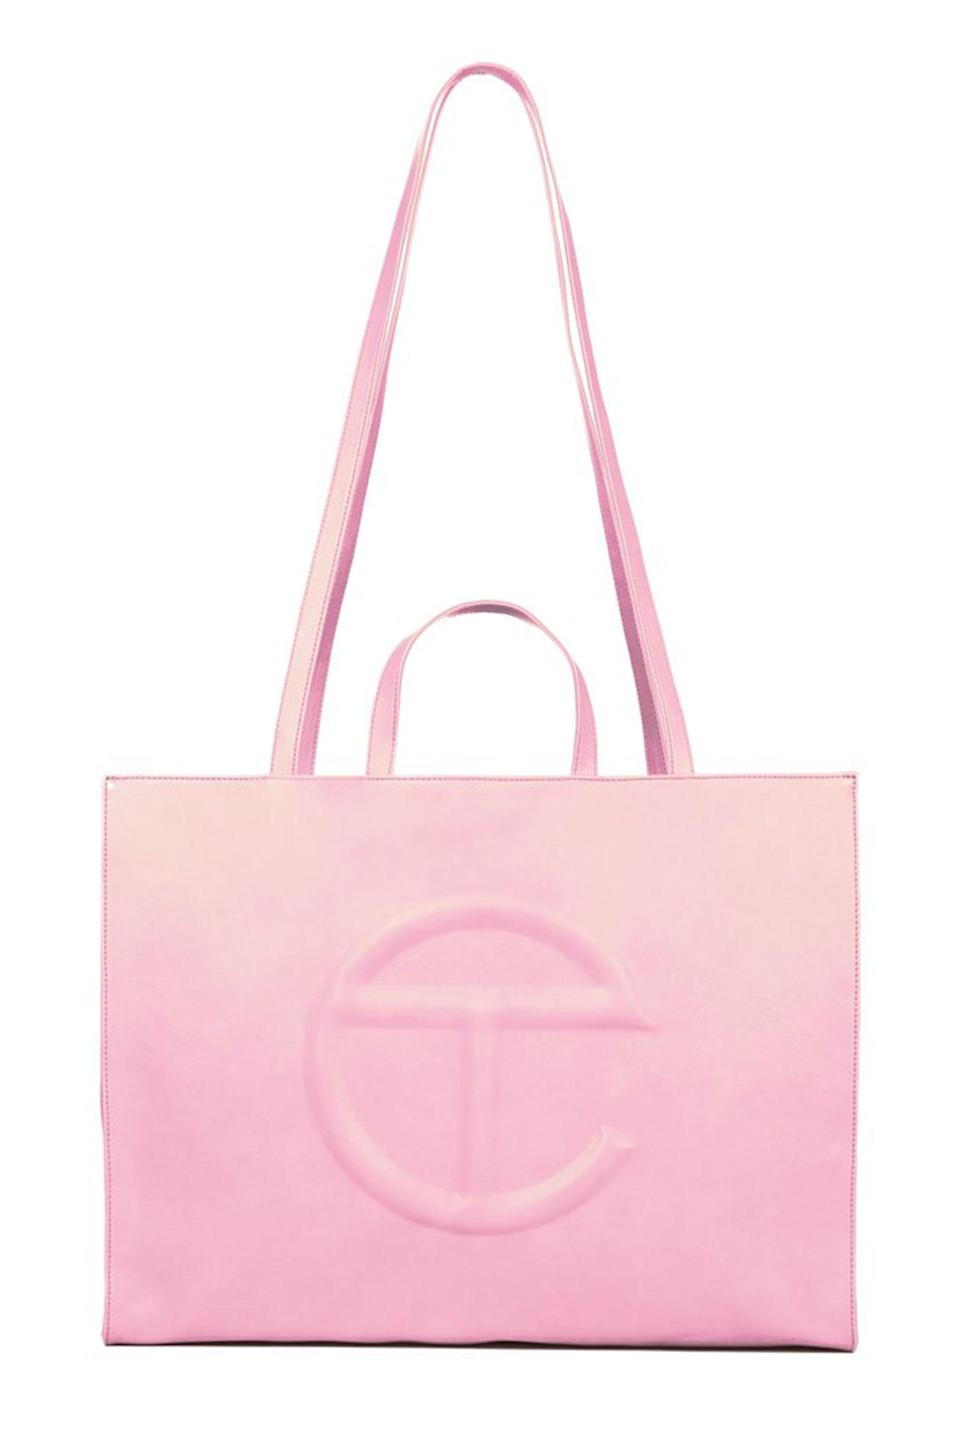 """<p>telfar.net</p><p><strong>$2020.00</strong></p><p><a href=""""https://shop.telfar.net/collections/bubblegum-pink-shopping-bags/products/large-bubblegum-pink-shopping-bag?variant=32457577300067"""" rel=""""nofollow noopener"""" target=""""_blank"""" data-ylk=""""slk:Shop Now"""" class=""""link rapid-noclick-resp"""">Shop Now</a></p><p>Unofficially dubbed the """"Bushwick Birkin,"""" the Telfar Shopping Bag is the most coveted bag of the year. The vegan tote bag, embossed with their iconic logo, is typically spotted on cool, underground, creative artists of New York. Because of its popularity, the only way to get a hold of one is to wait for a bag drop online, where bags sell out in minutes. Despite its scarcity, the black-owned, non-gendered fashion brand initially created the bag to be accessible for the community. The Large Shopping Bag is the ideal weekend and travel bag, but don't bother deciding on just one—you'll find an excuse to collect it in every size and colo</p>"""